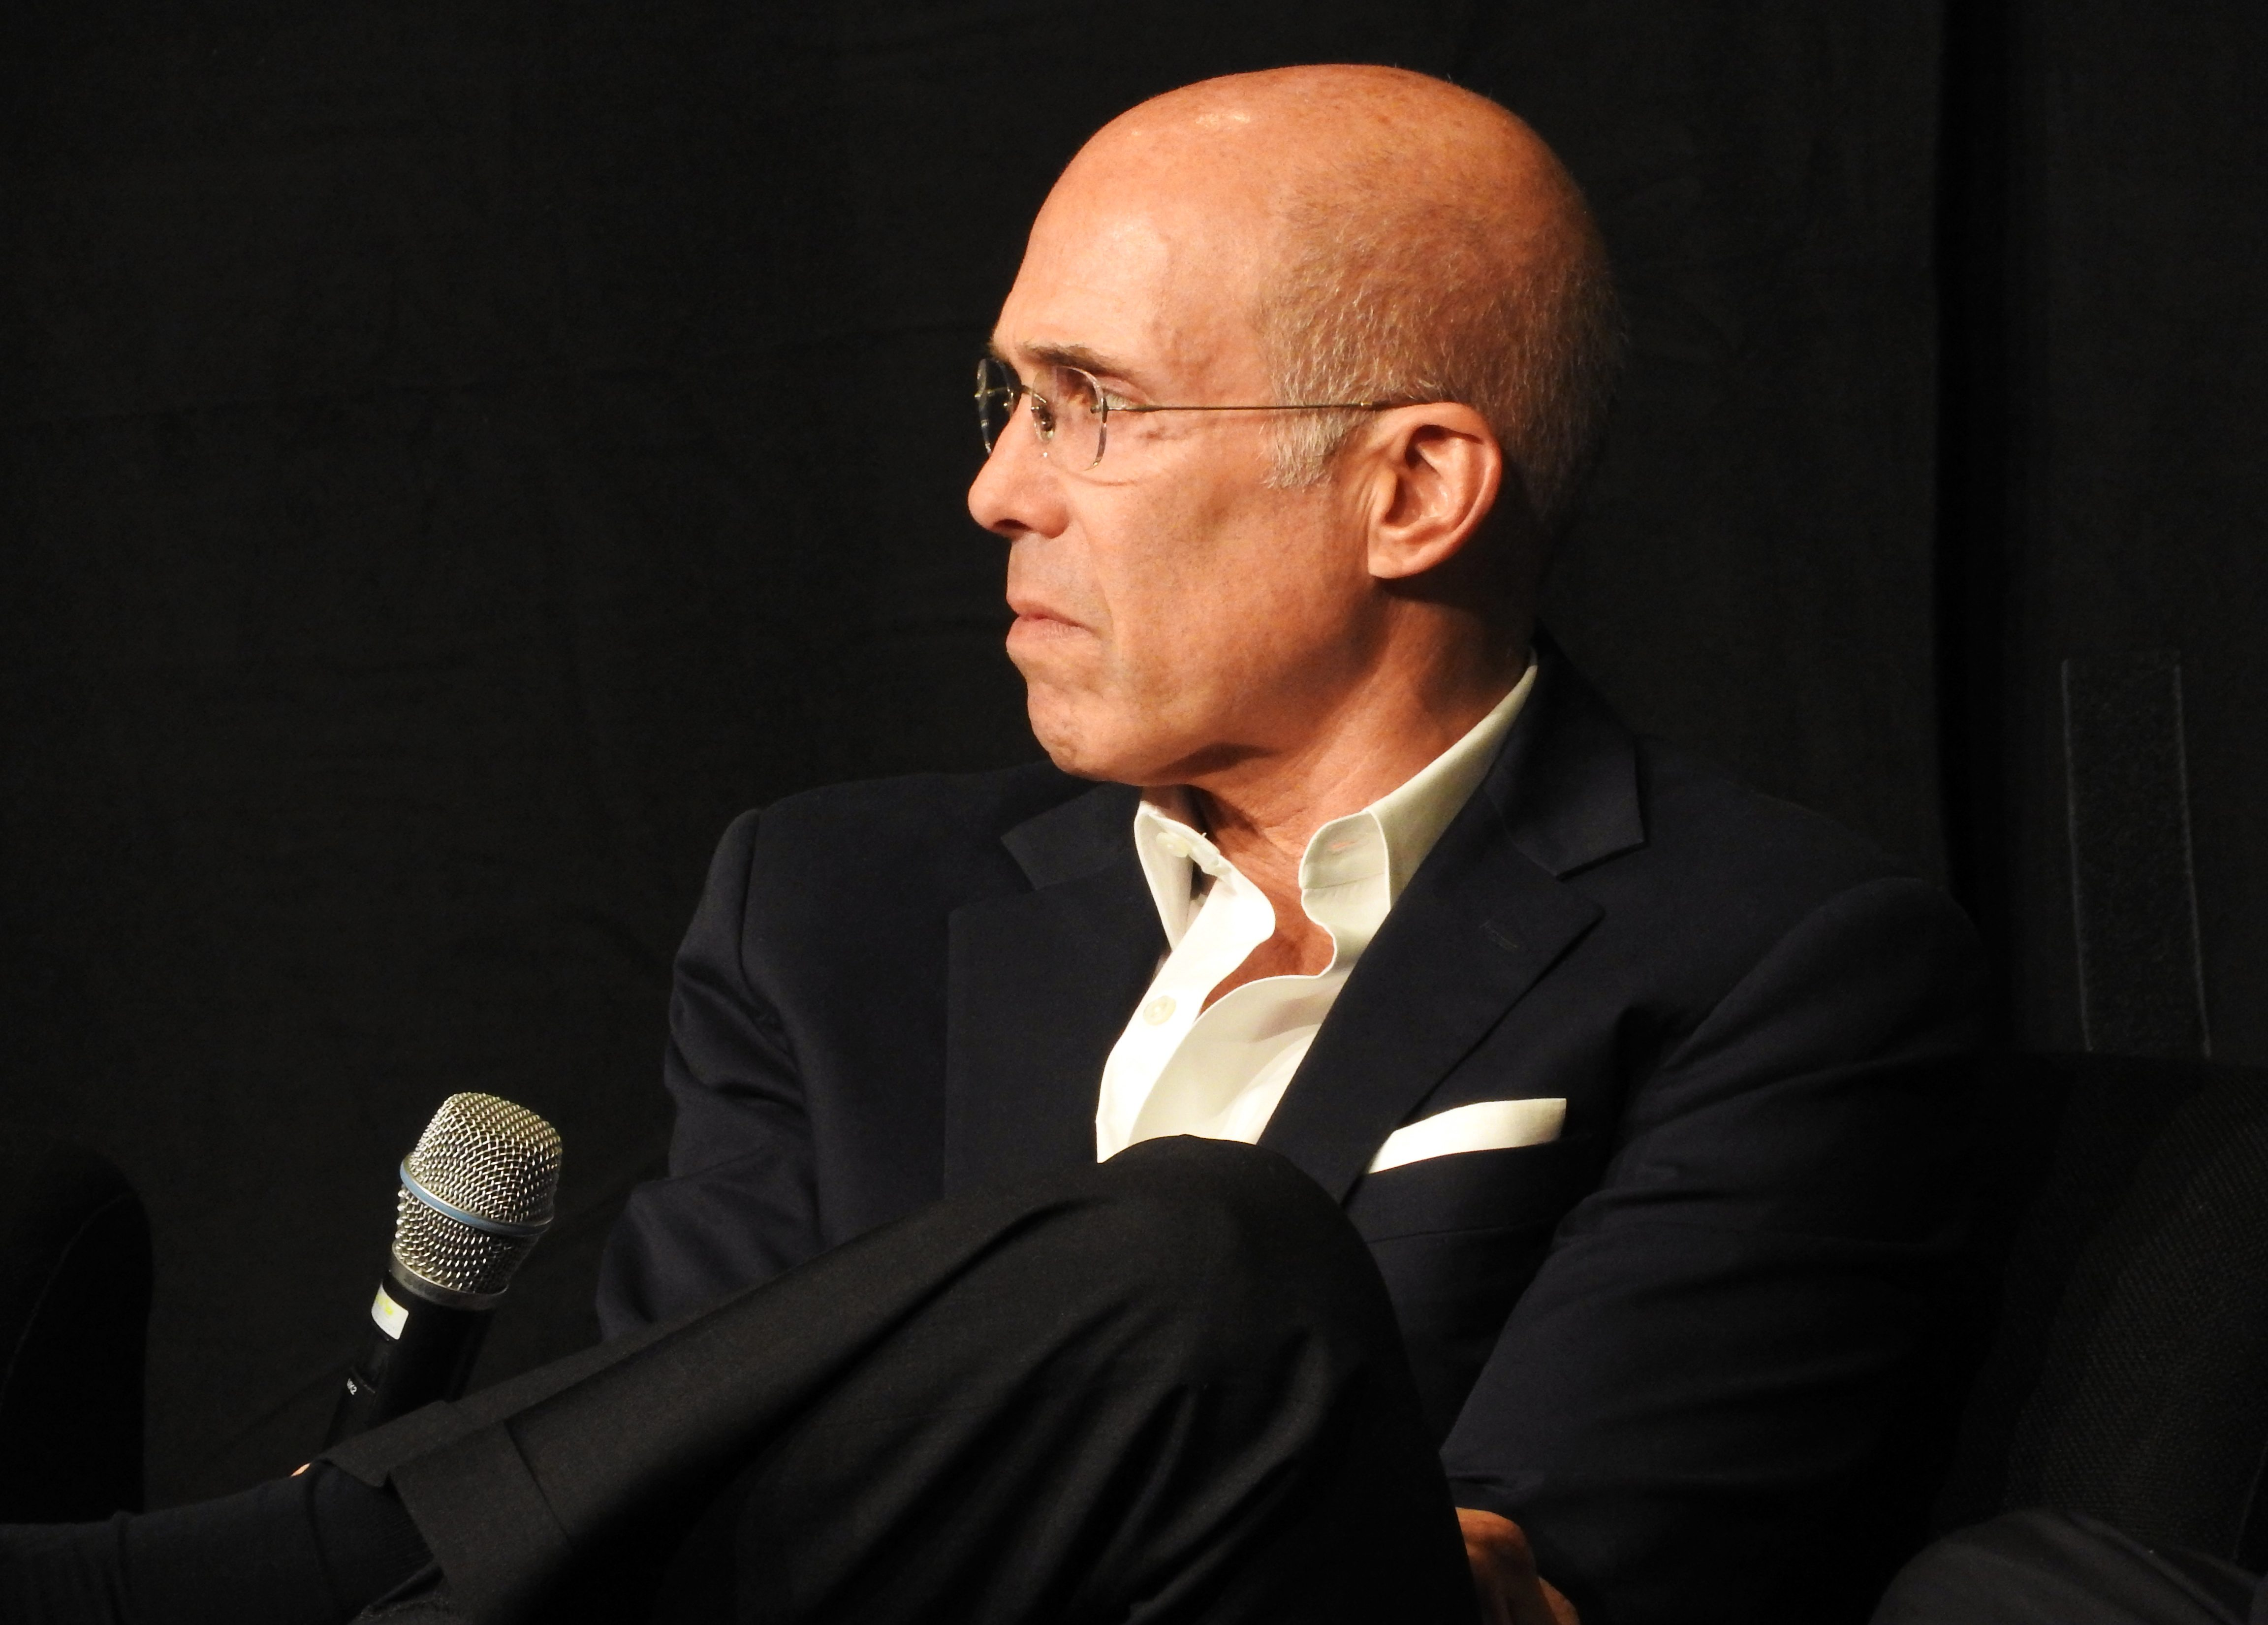 Jeffrey Katzenberg, outgoing head of DreamWorks Animation, at CineEurope 2016